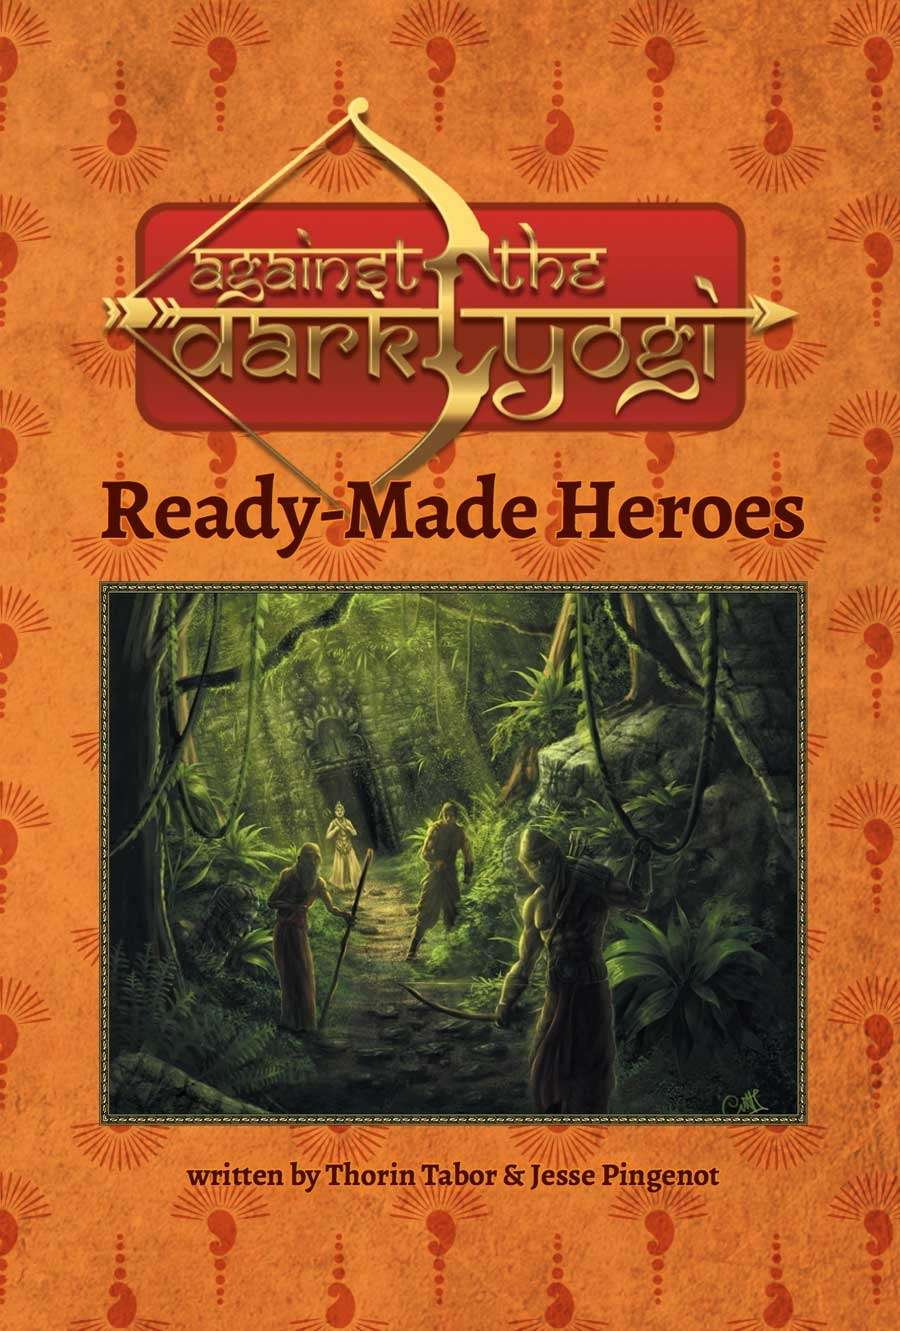 Against the Dark Yogi: Ready-Made Heroes